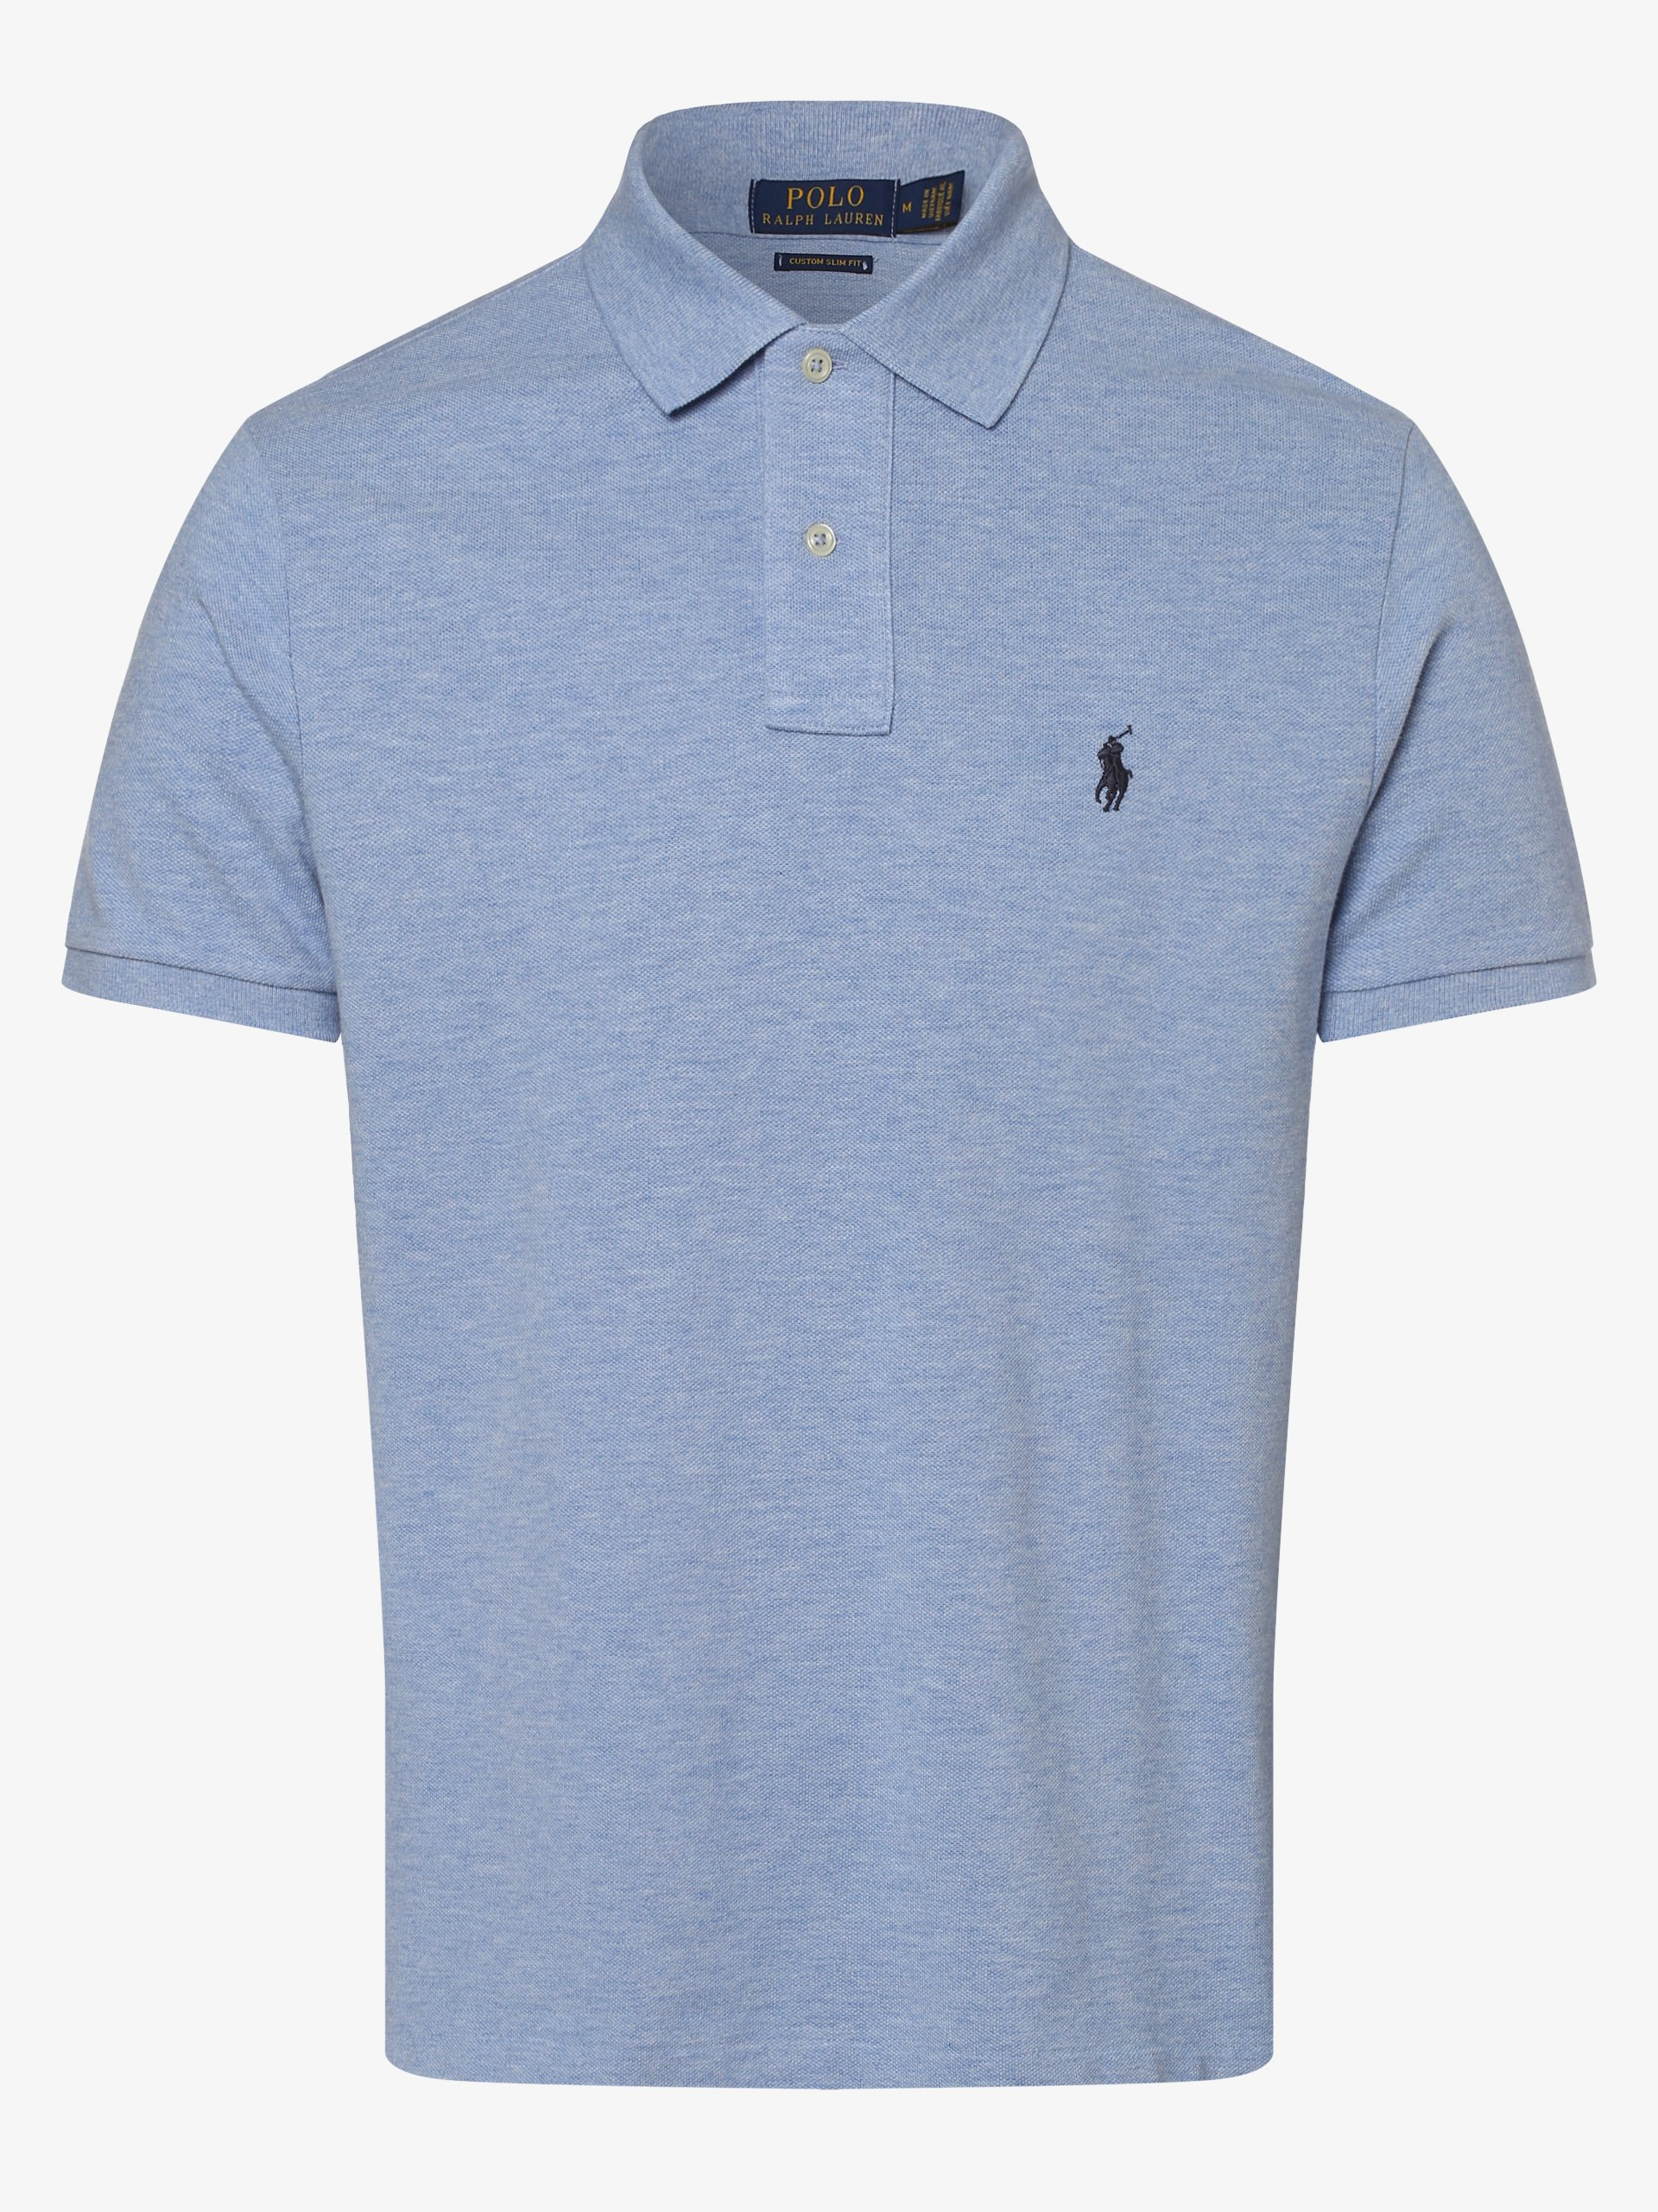 Polo Ralph Lauren Herren Poloshirt Regular Fit